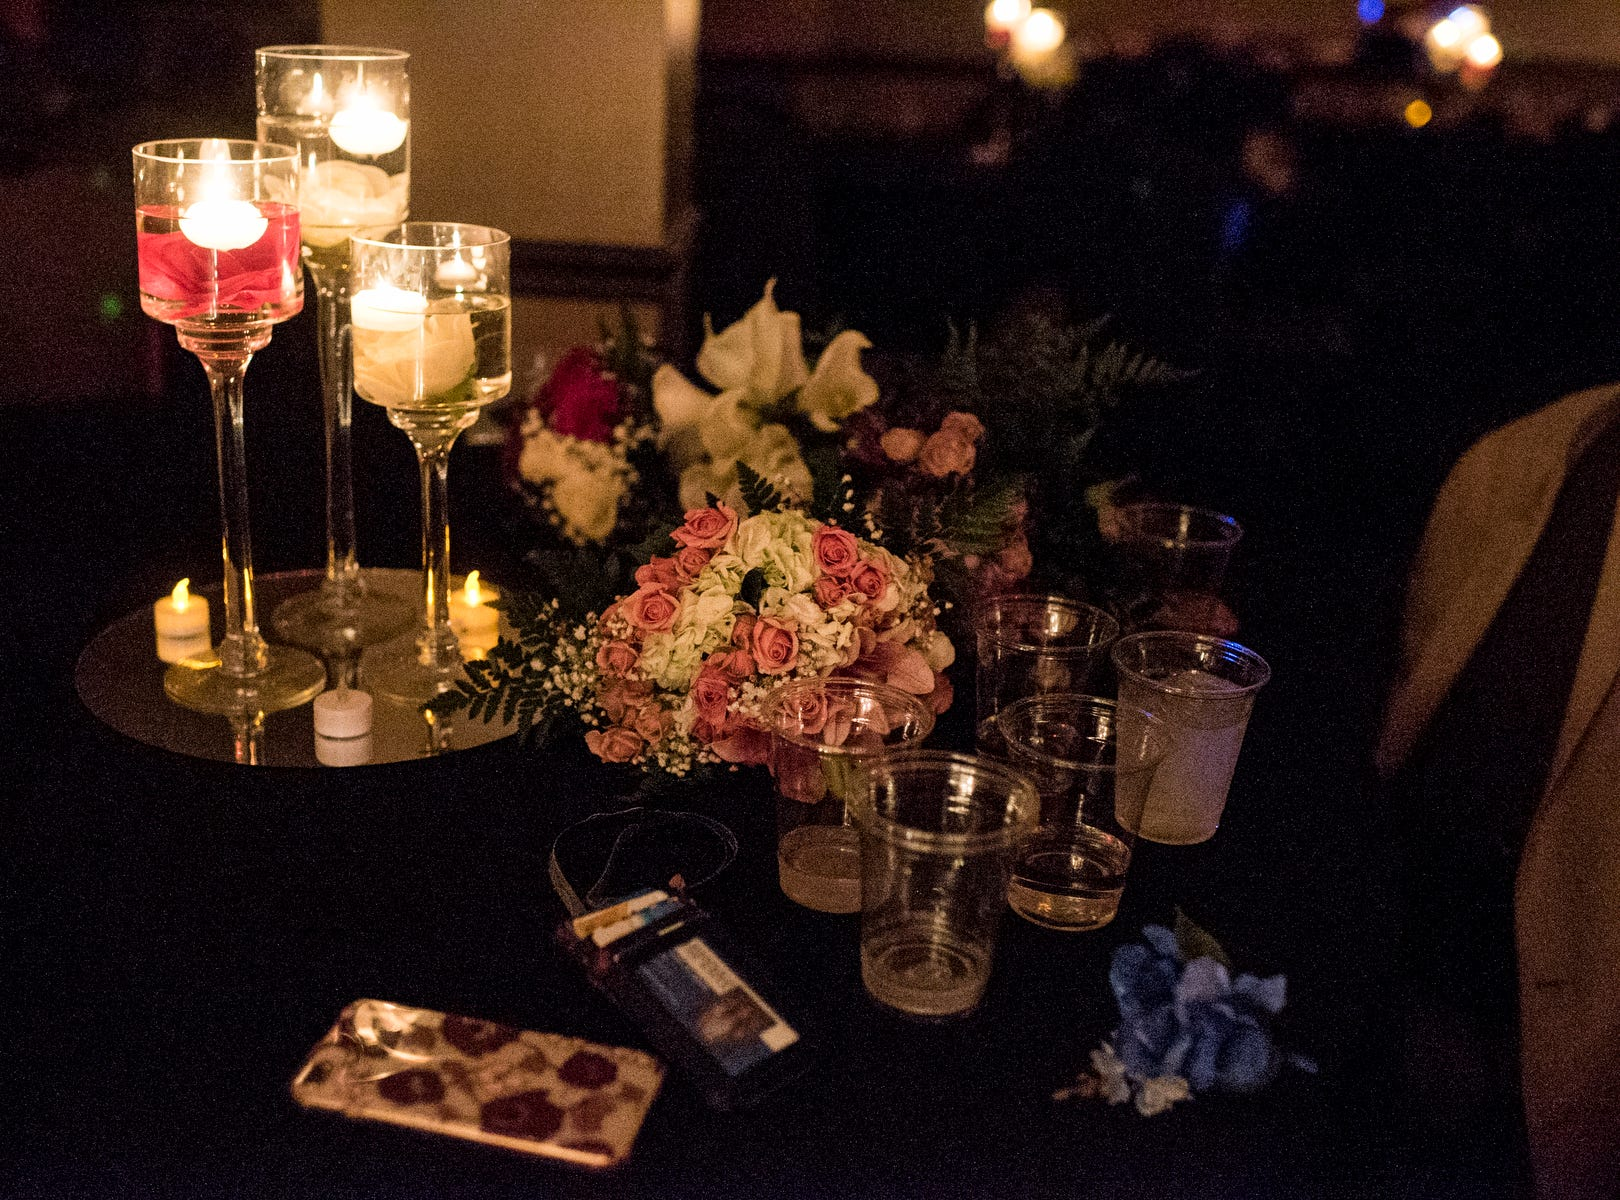 An assortment of water cups, cell phones, and flowers sit on a table as Evansville Day School students dance the night away during their prom held at the Hadi Shrine Banquet Hall in downtown Evansville, Ind., Saturday, April 27, 2019.